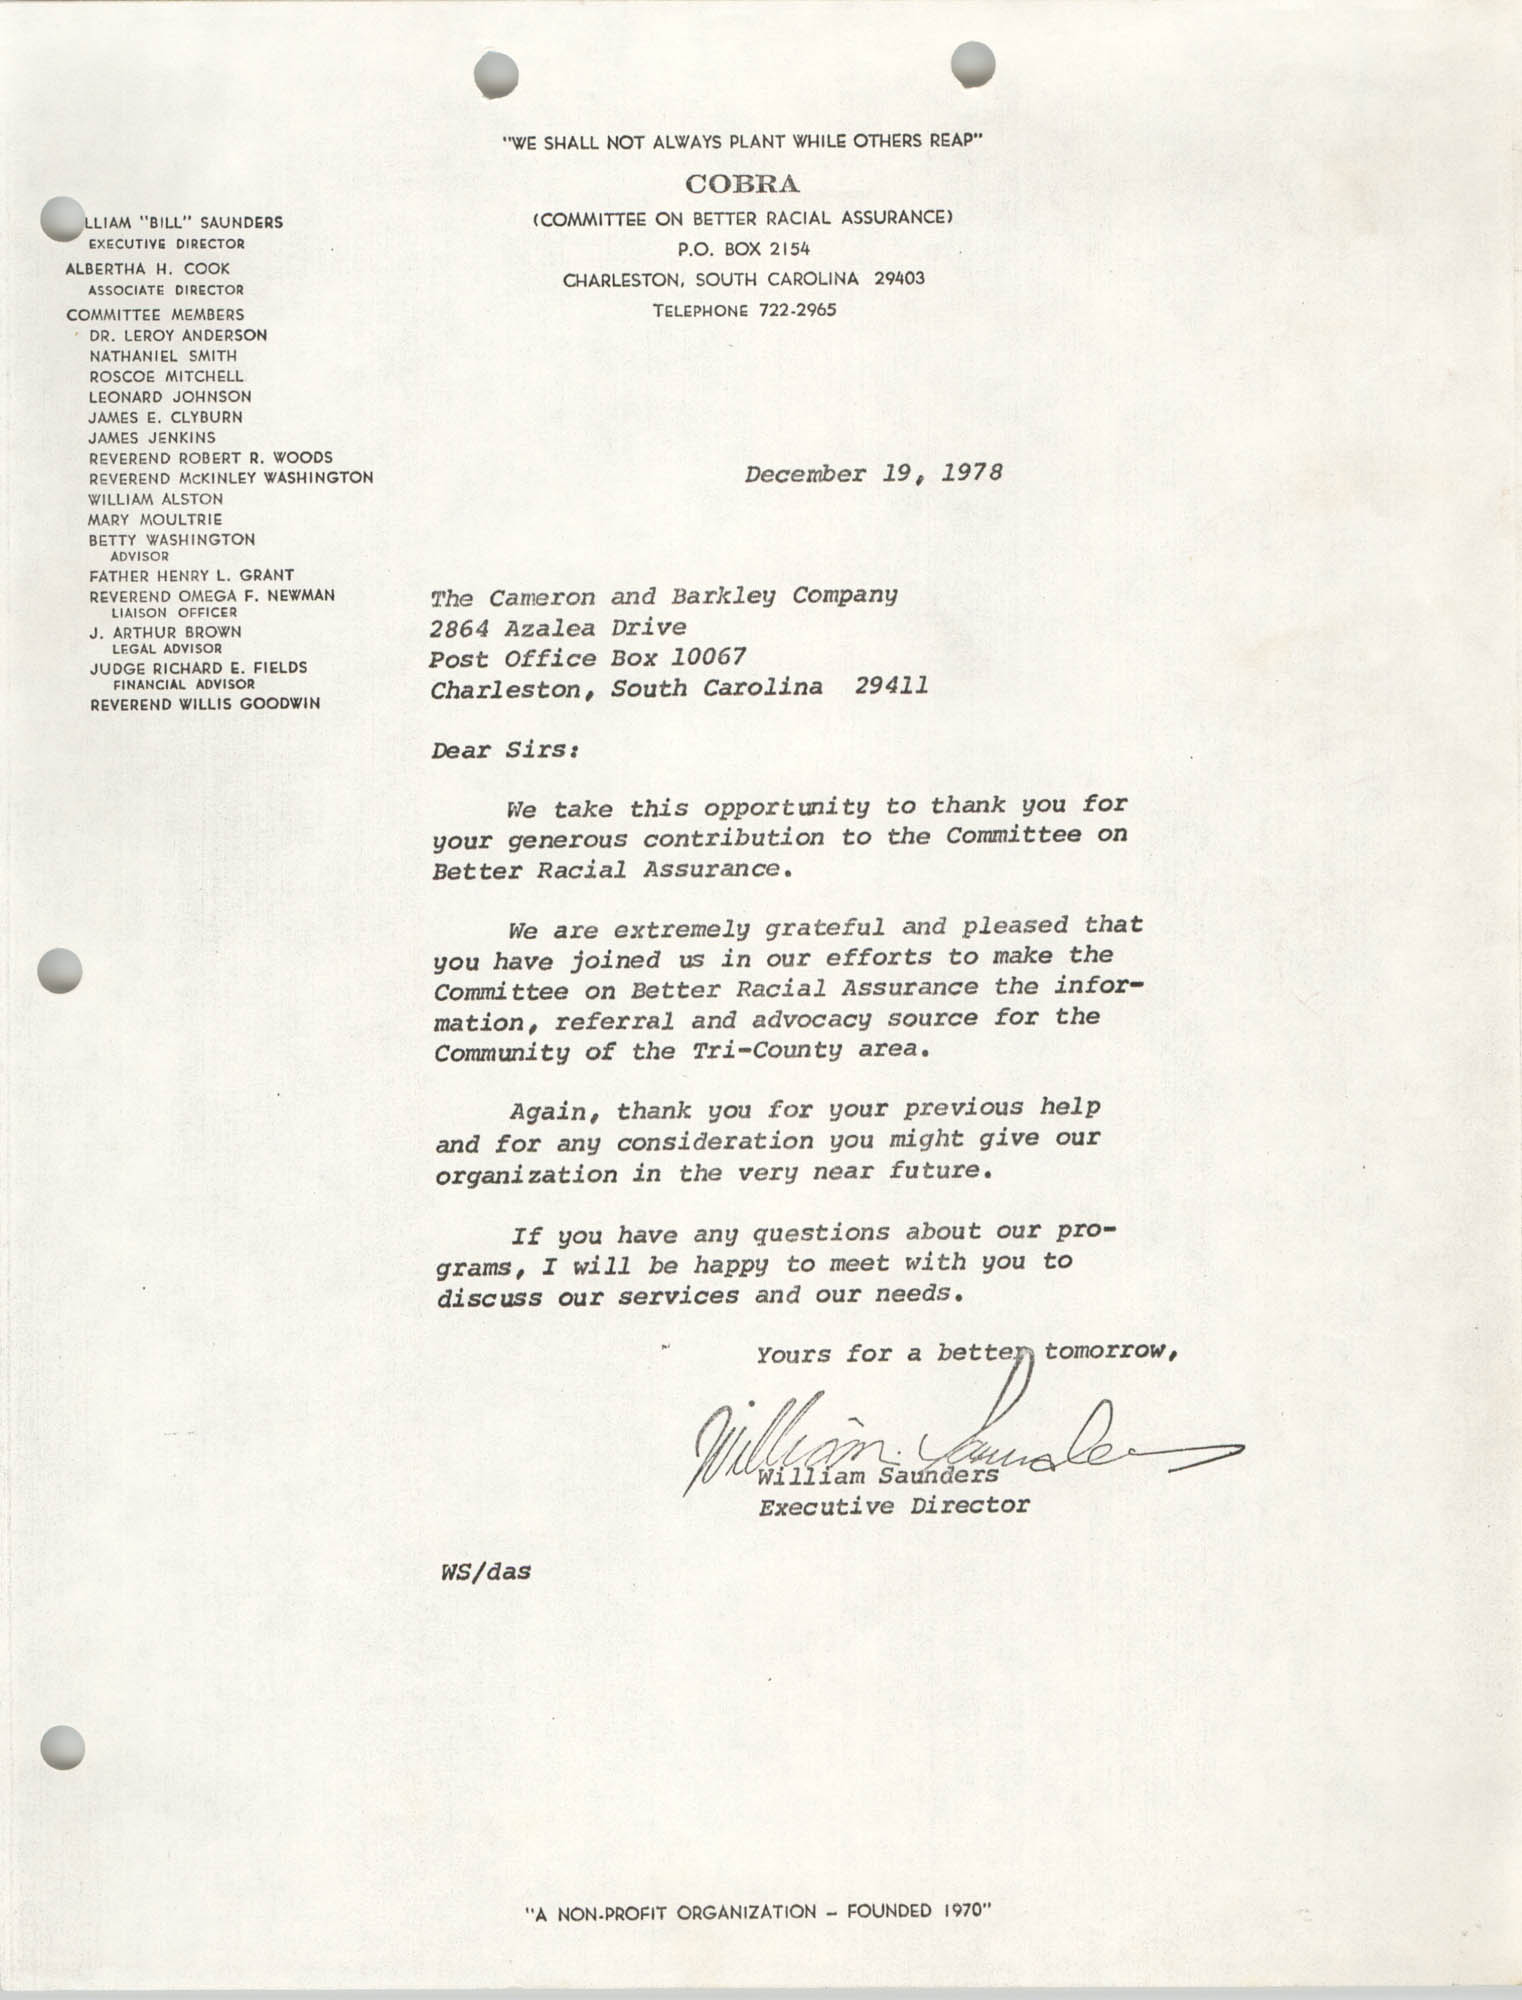 Letter from William Saunders to The Cameron and Barkley Company, December 19, 1978